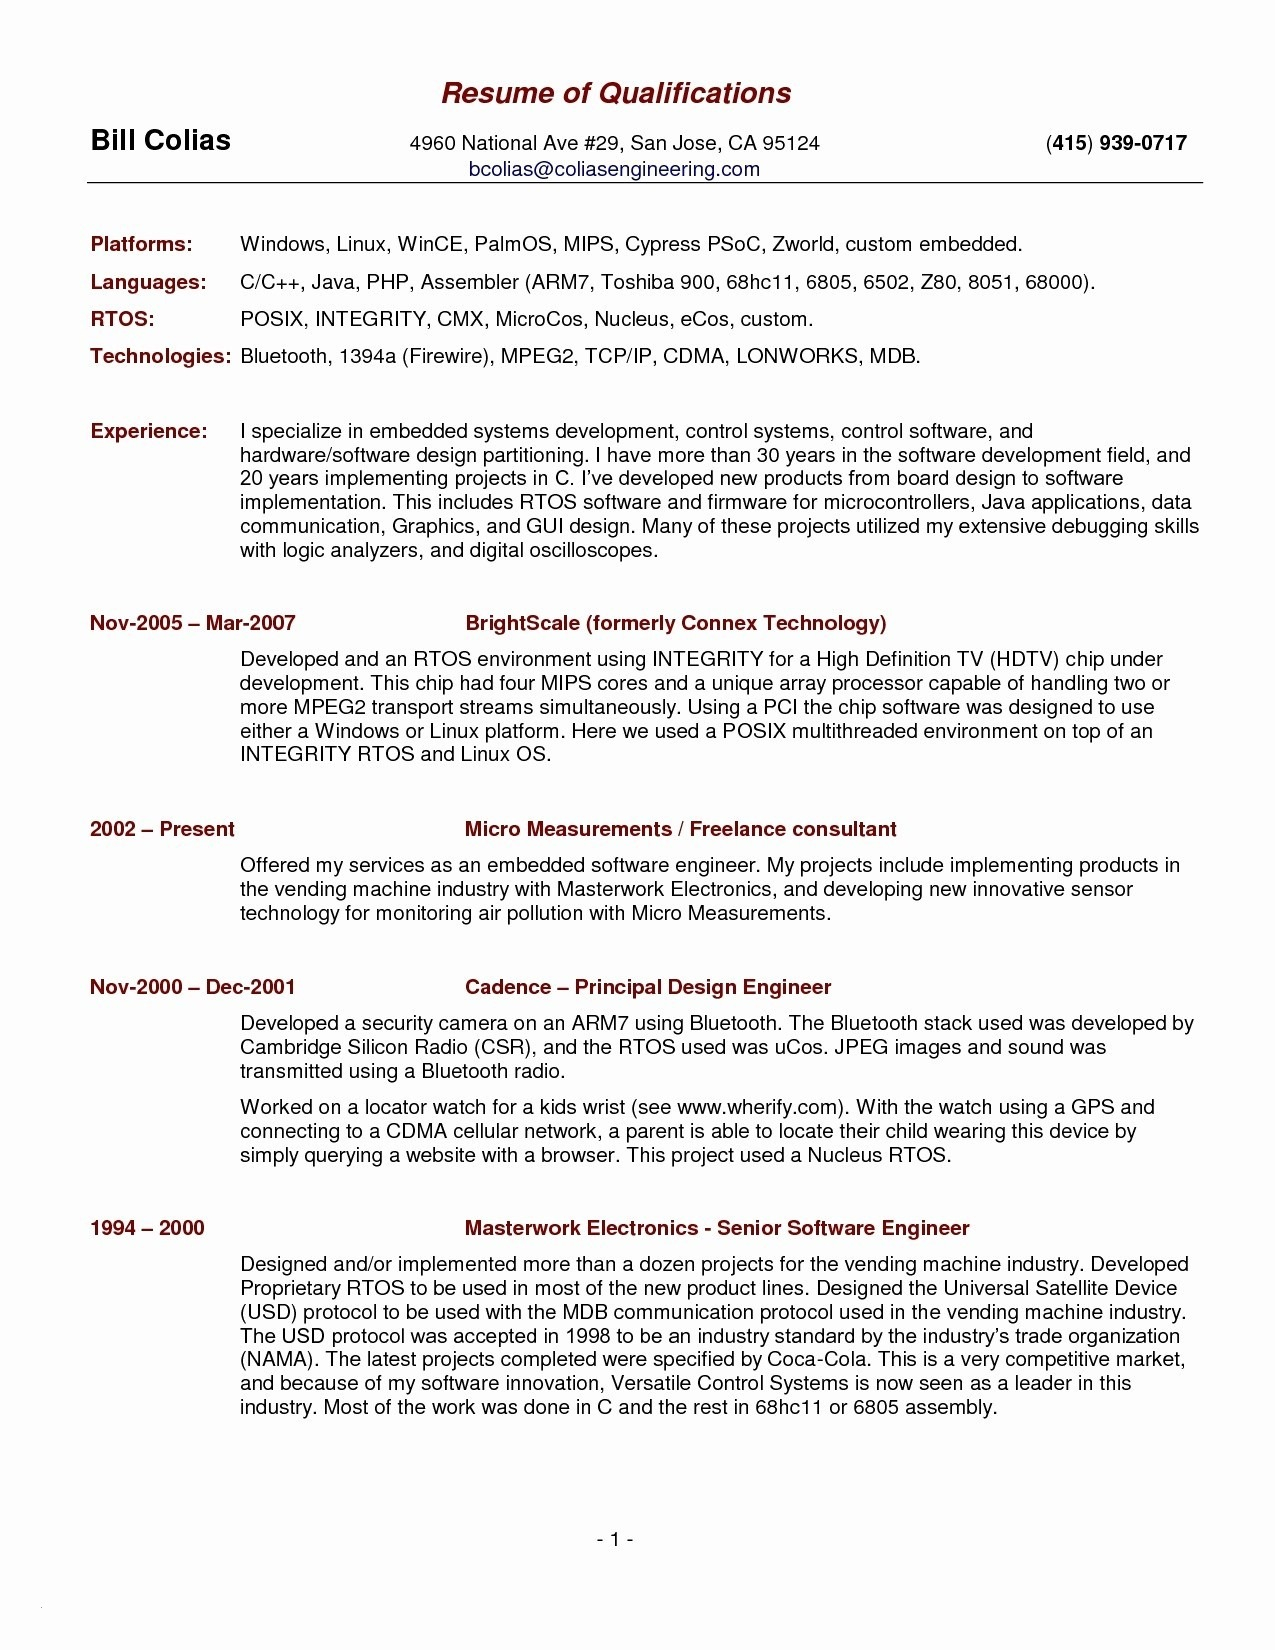 Resume Template Free - Resume Templates Pdf Free Inspirational Lovely Pr Resume Template